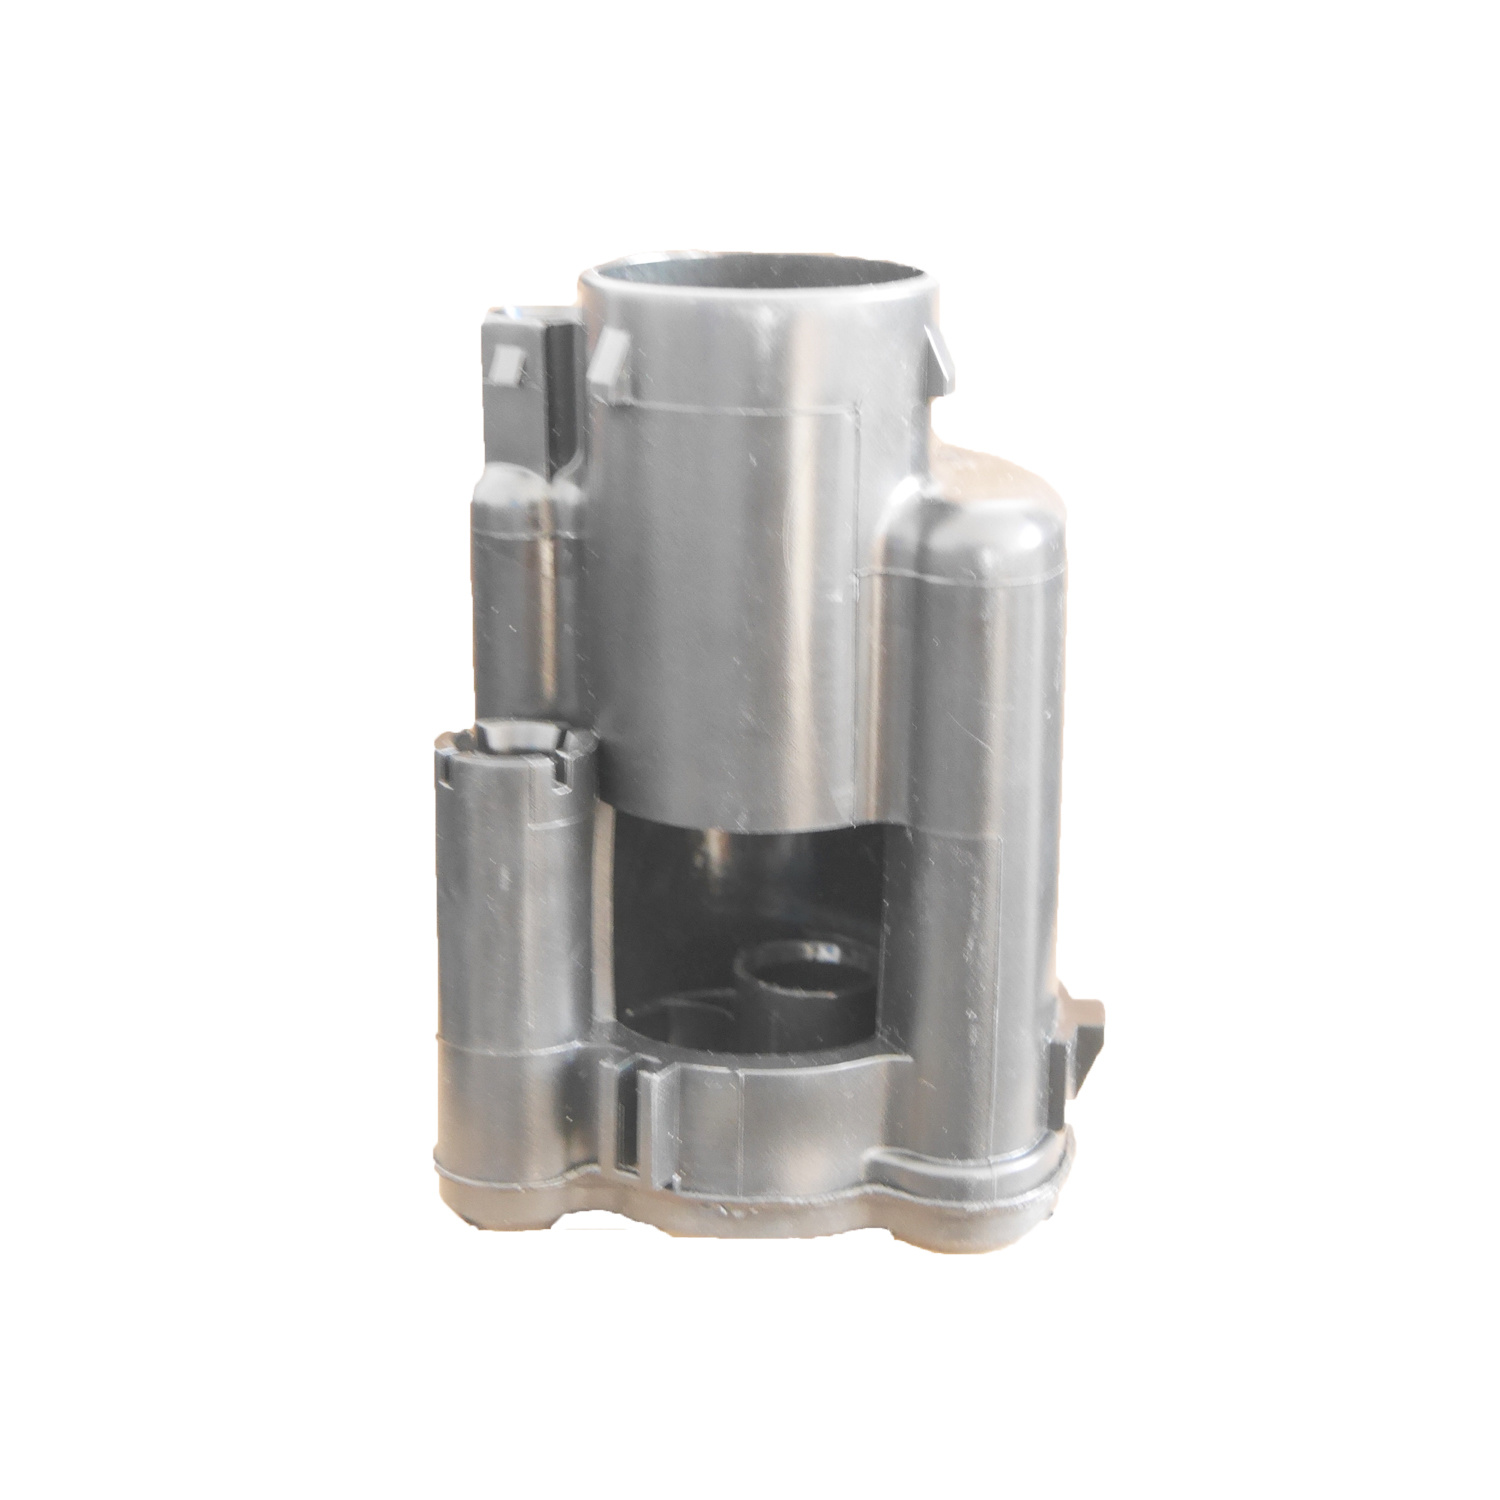 hight resolution of high quality auto parts plastic hino fuel filter ok52y 20 490